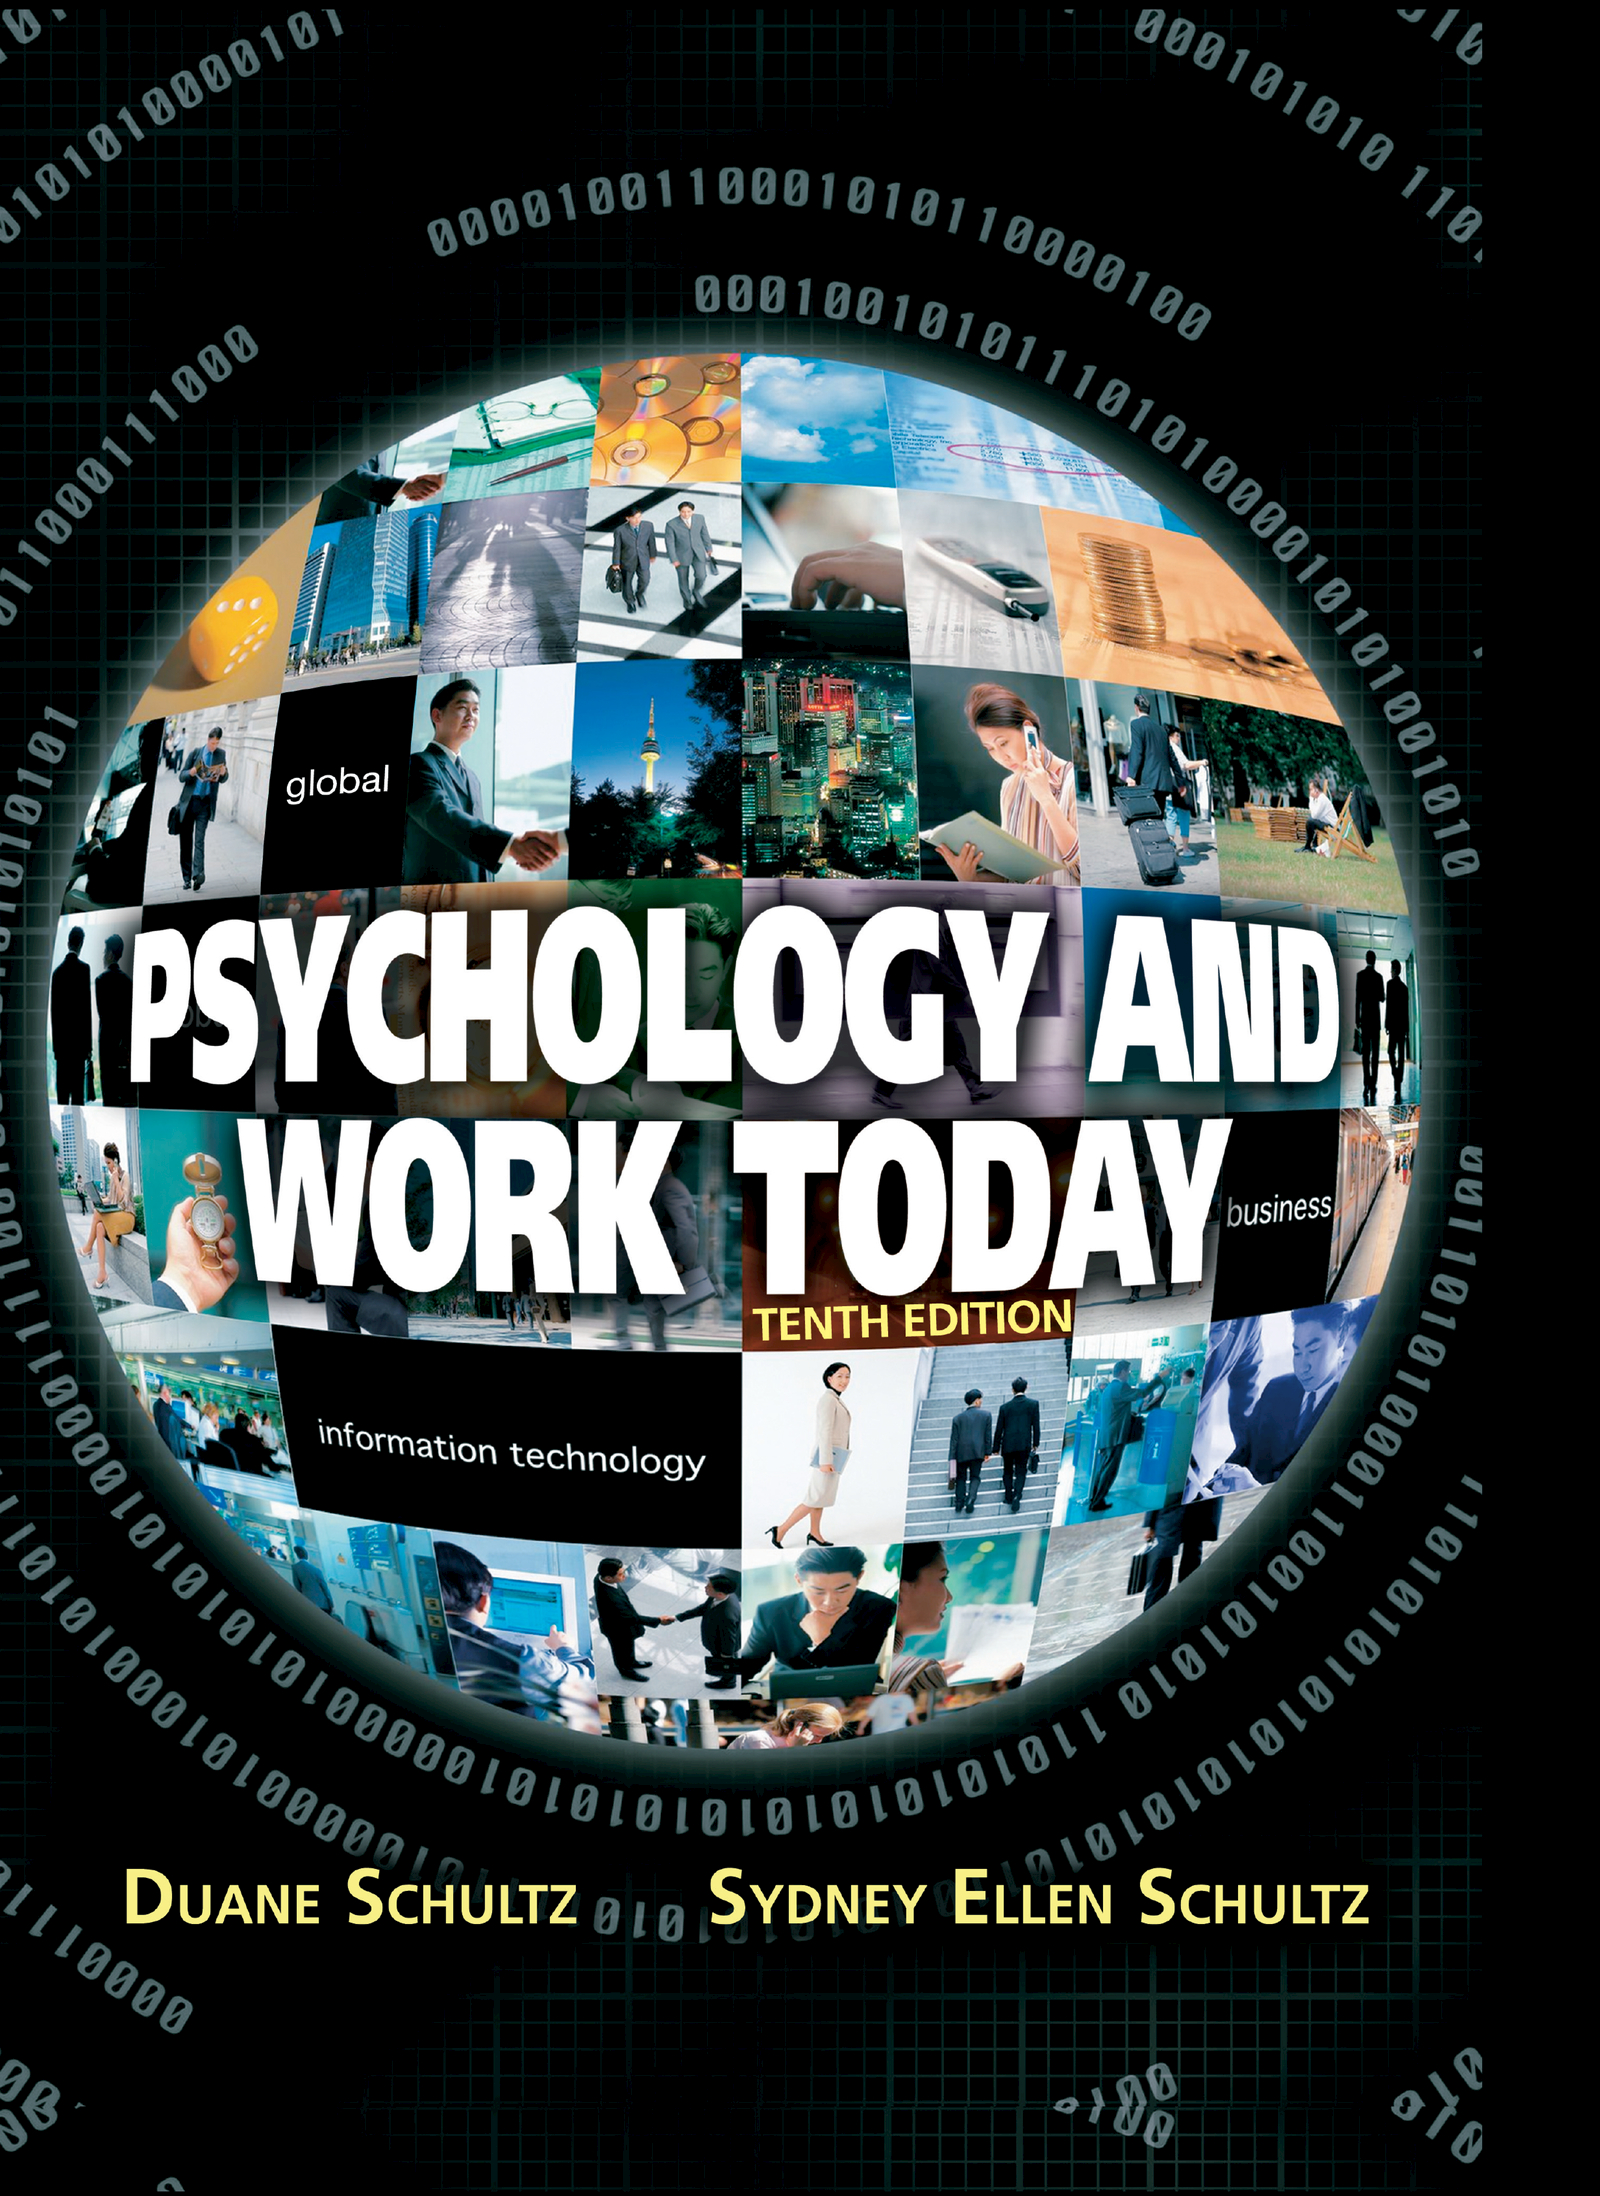 Psychology And Work Today 10th Edition Taylor Francis Group